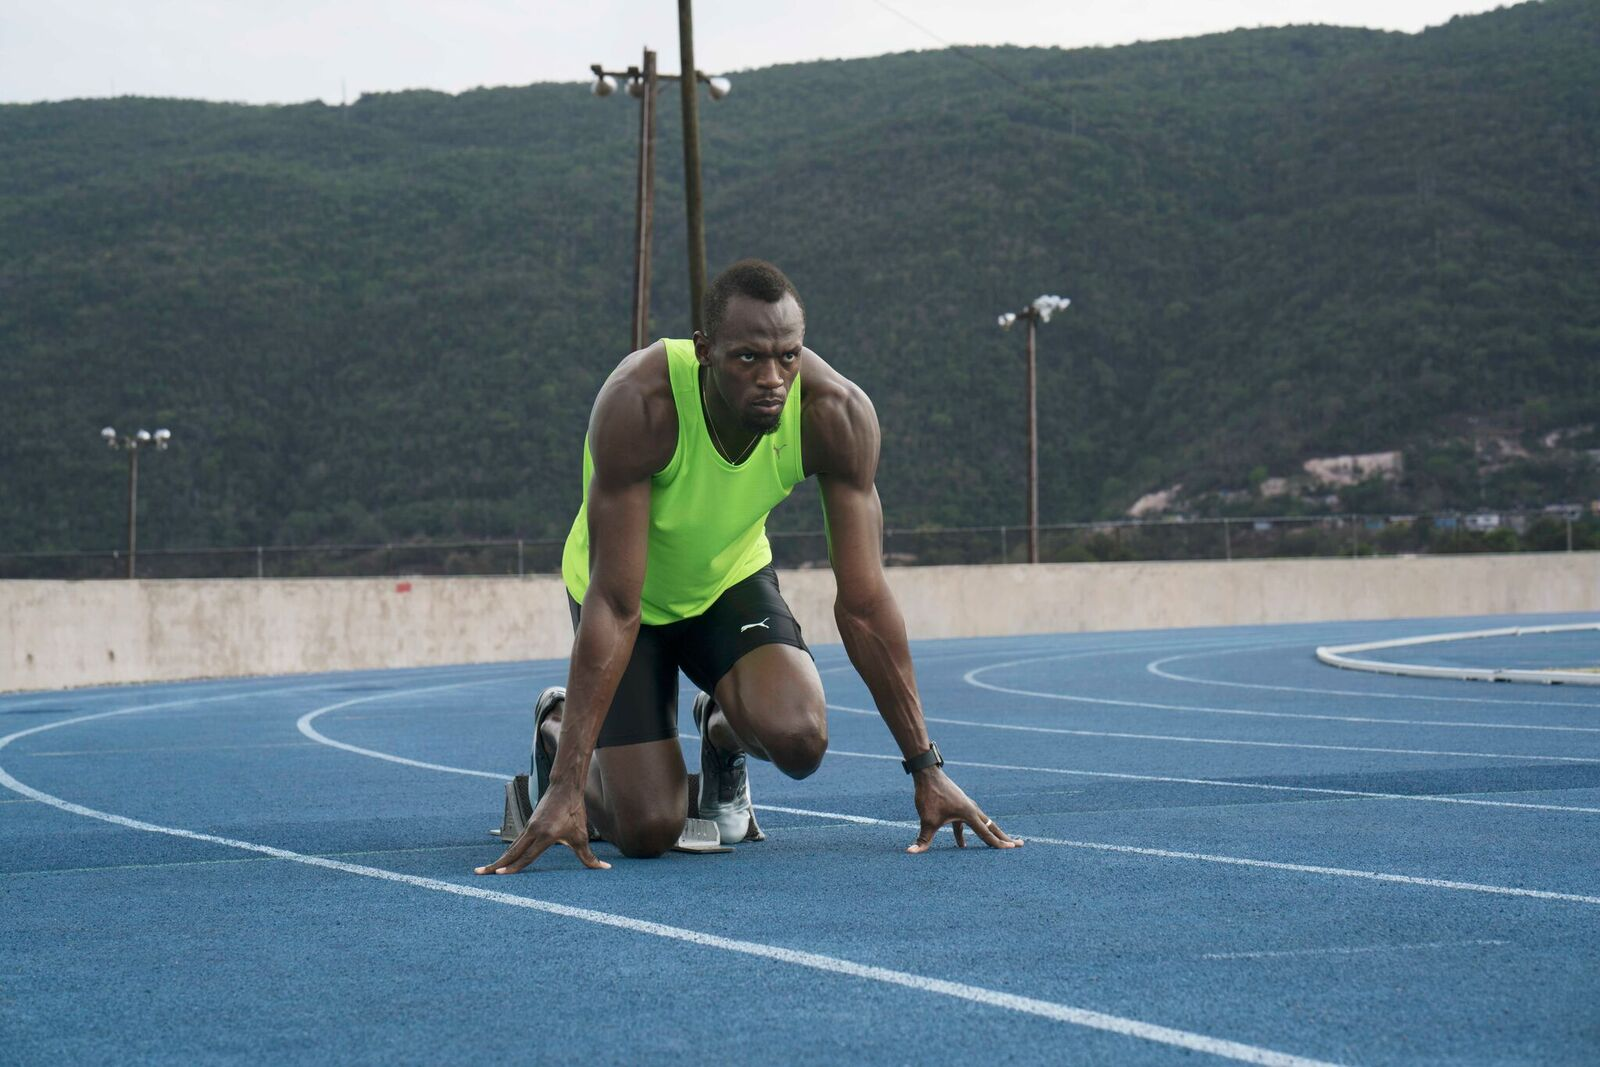 Enertor Insoles are Used and Endorsed by Usain Bolt